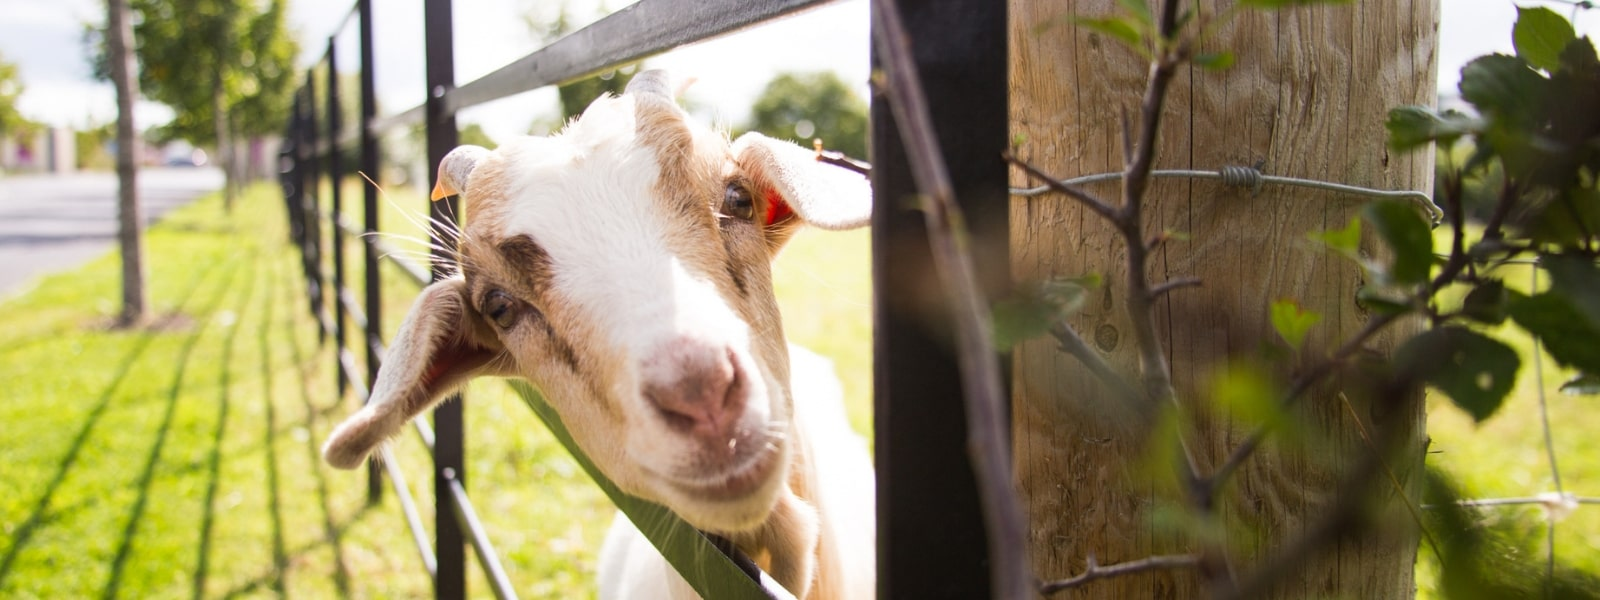 https://www.airfield.ie/wp-content/uploads/2019/01/Billy-The-Goat-at-Airfield-Estate-min.jpg